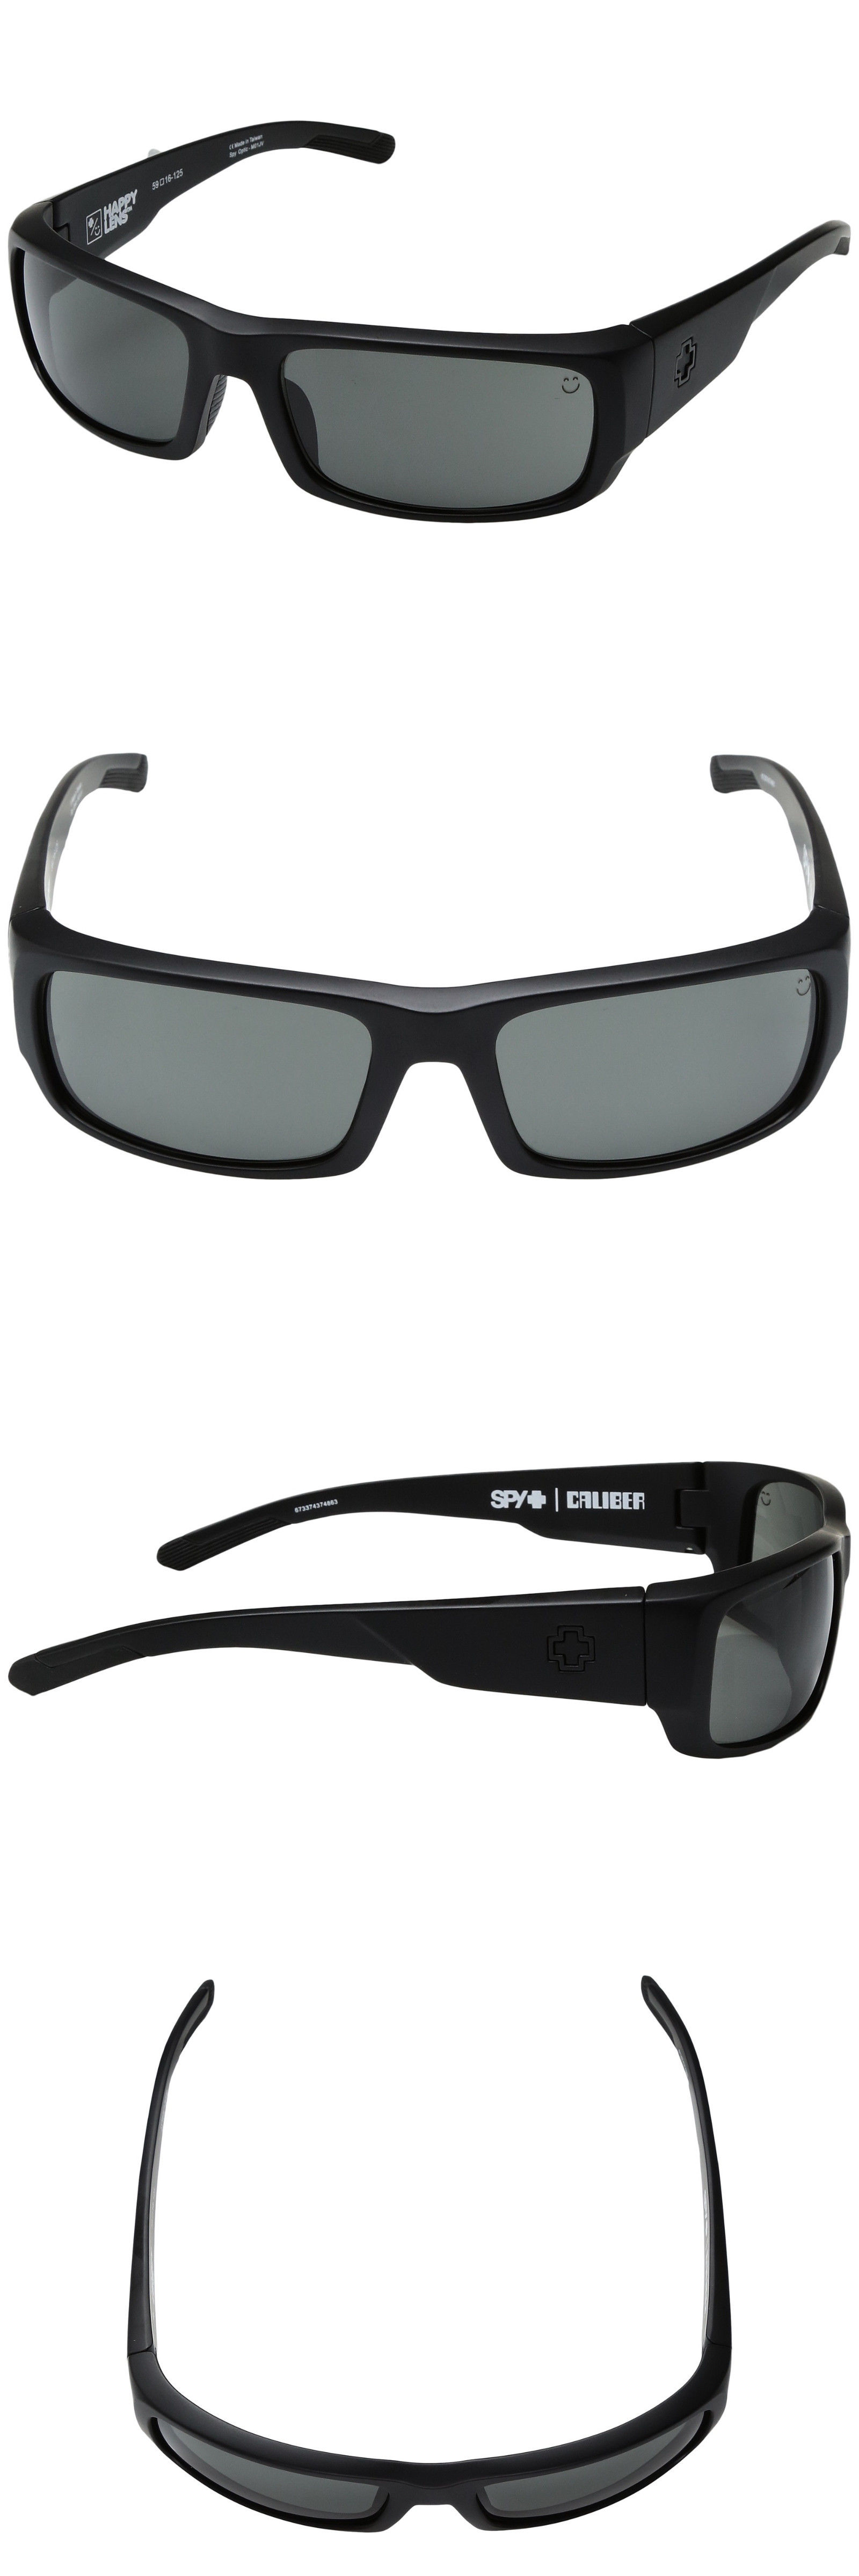 3429f7b214 Sunglasses 155189  New Men S Spy Optic Caliber Wrap Sunglasses Matte Black  Happy Gray Green -  BUY IT NOW ONLY   36.99 on eBay!